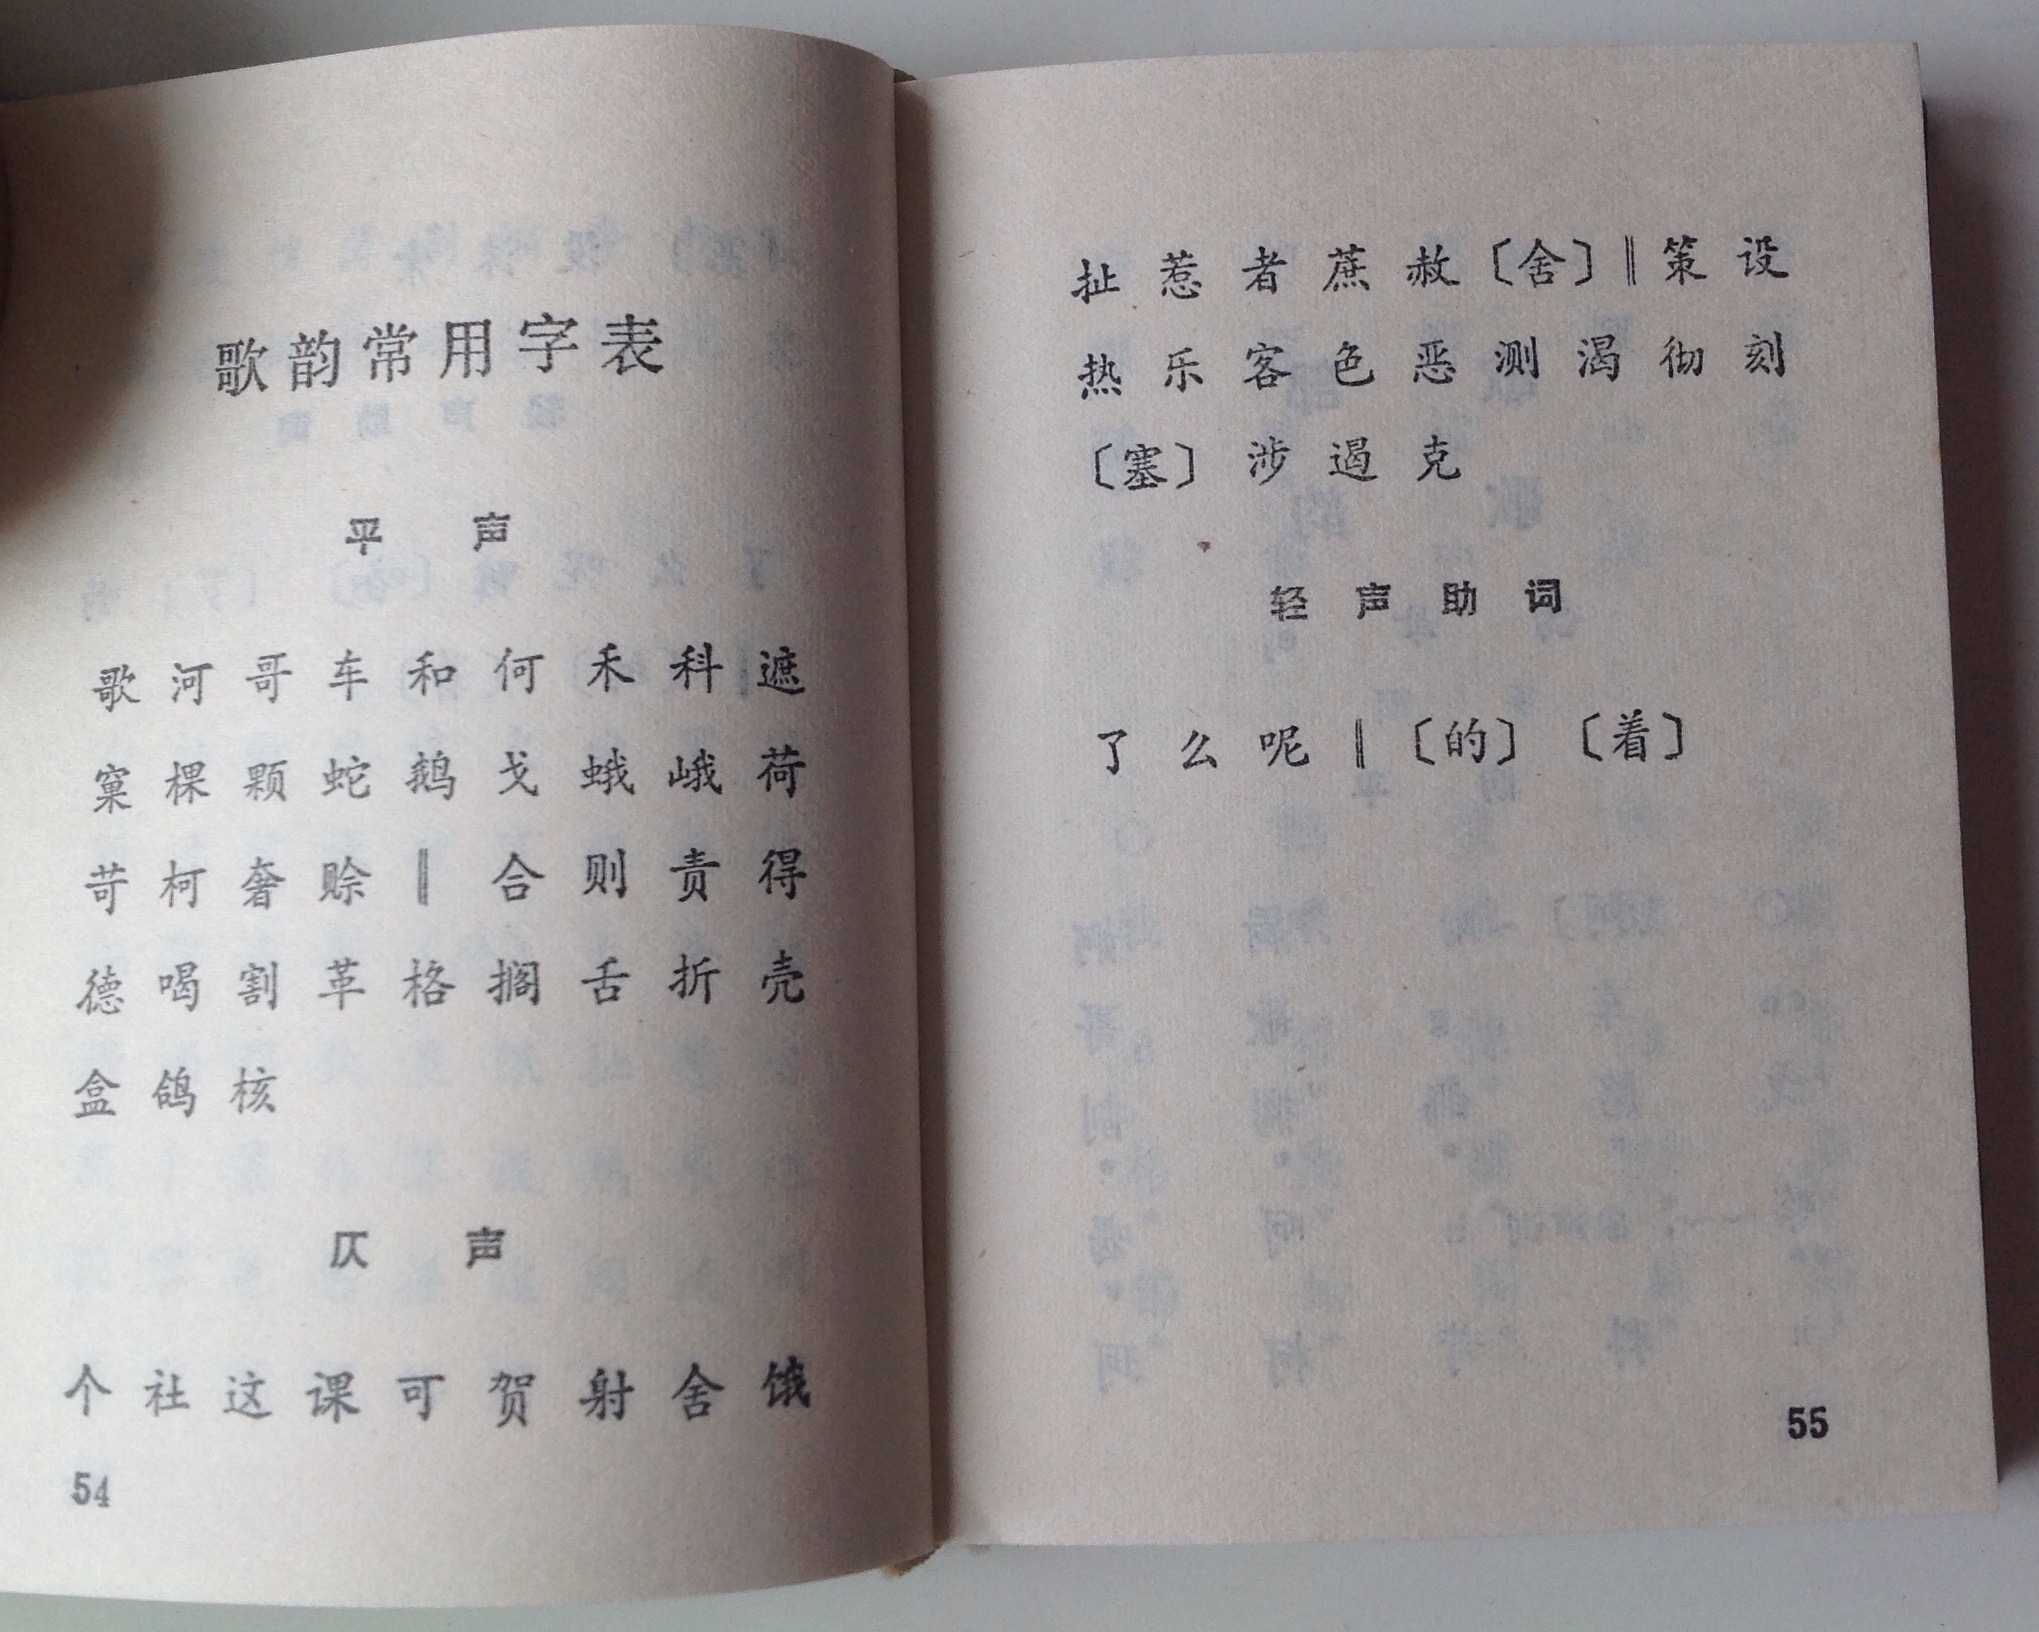 Hua sheng Service Manual